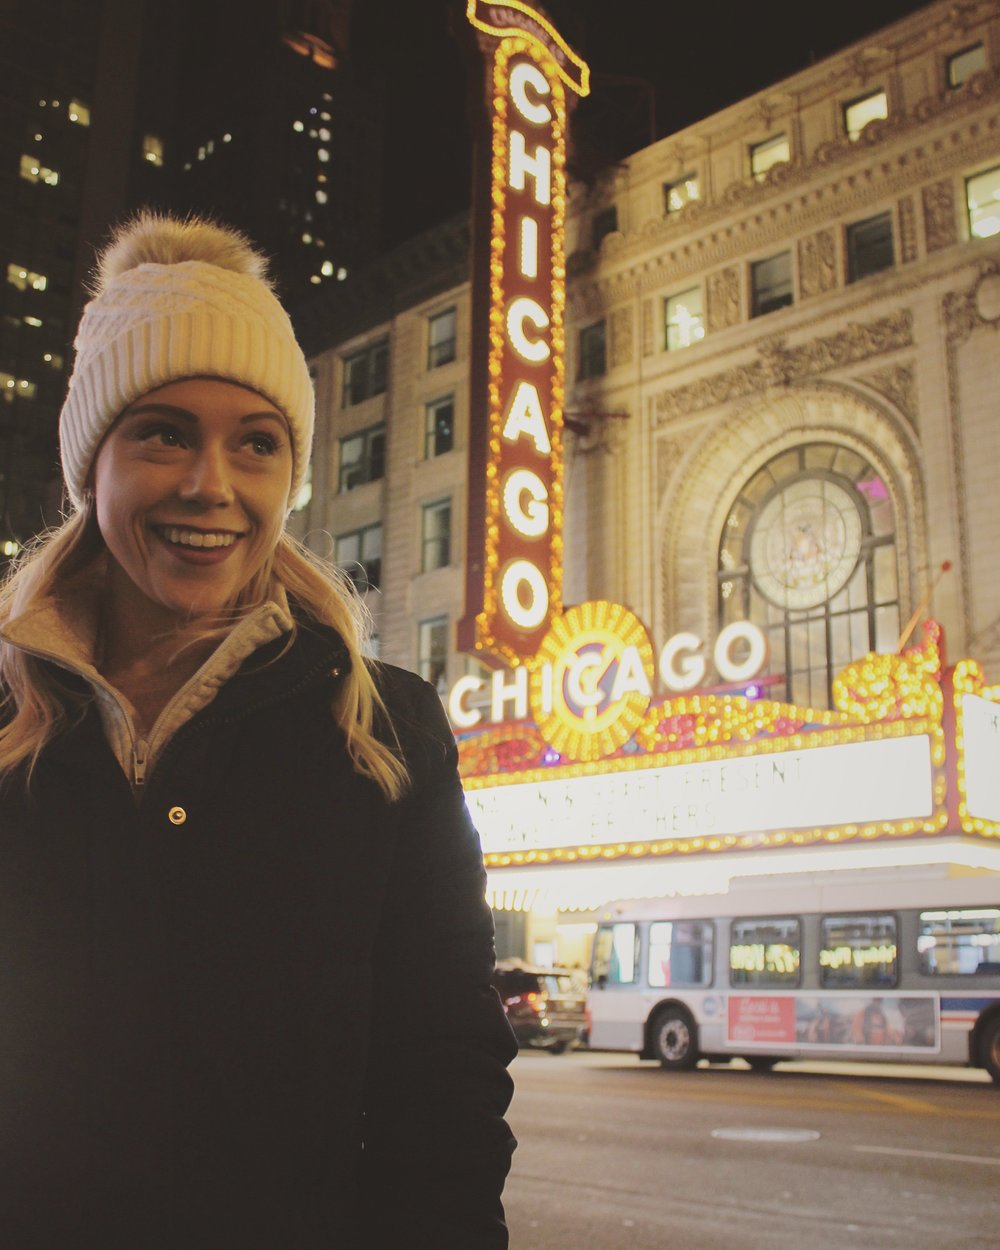 Outside the Chicago Theater | @emilyminormusic on Instagram